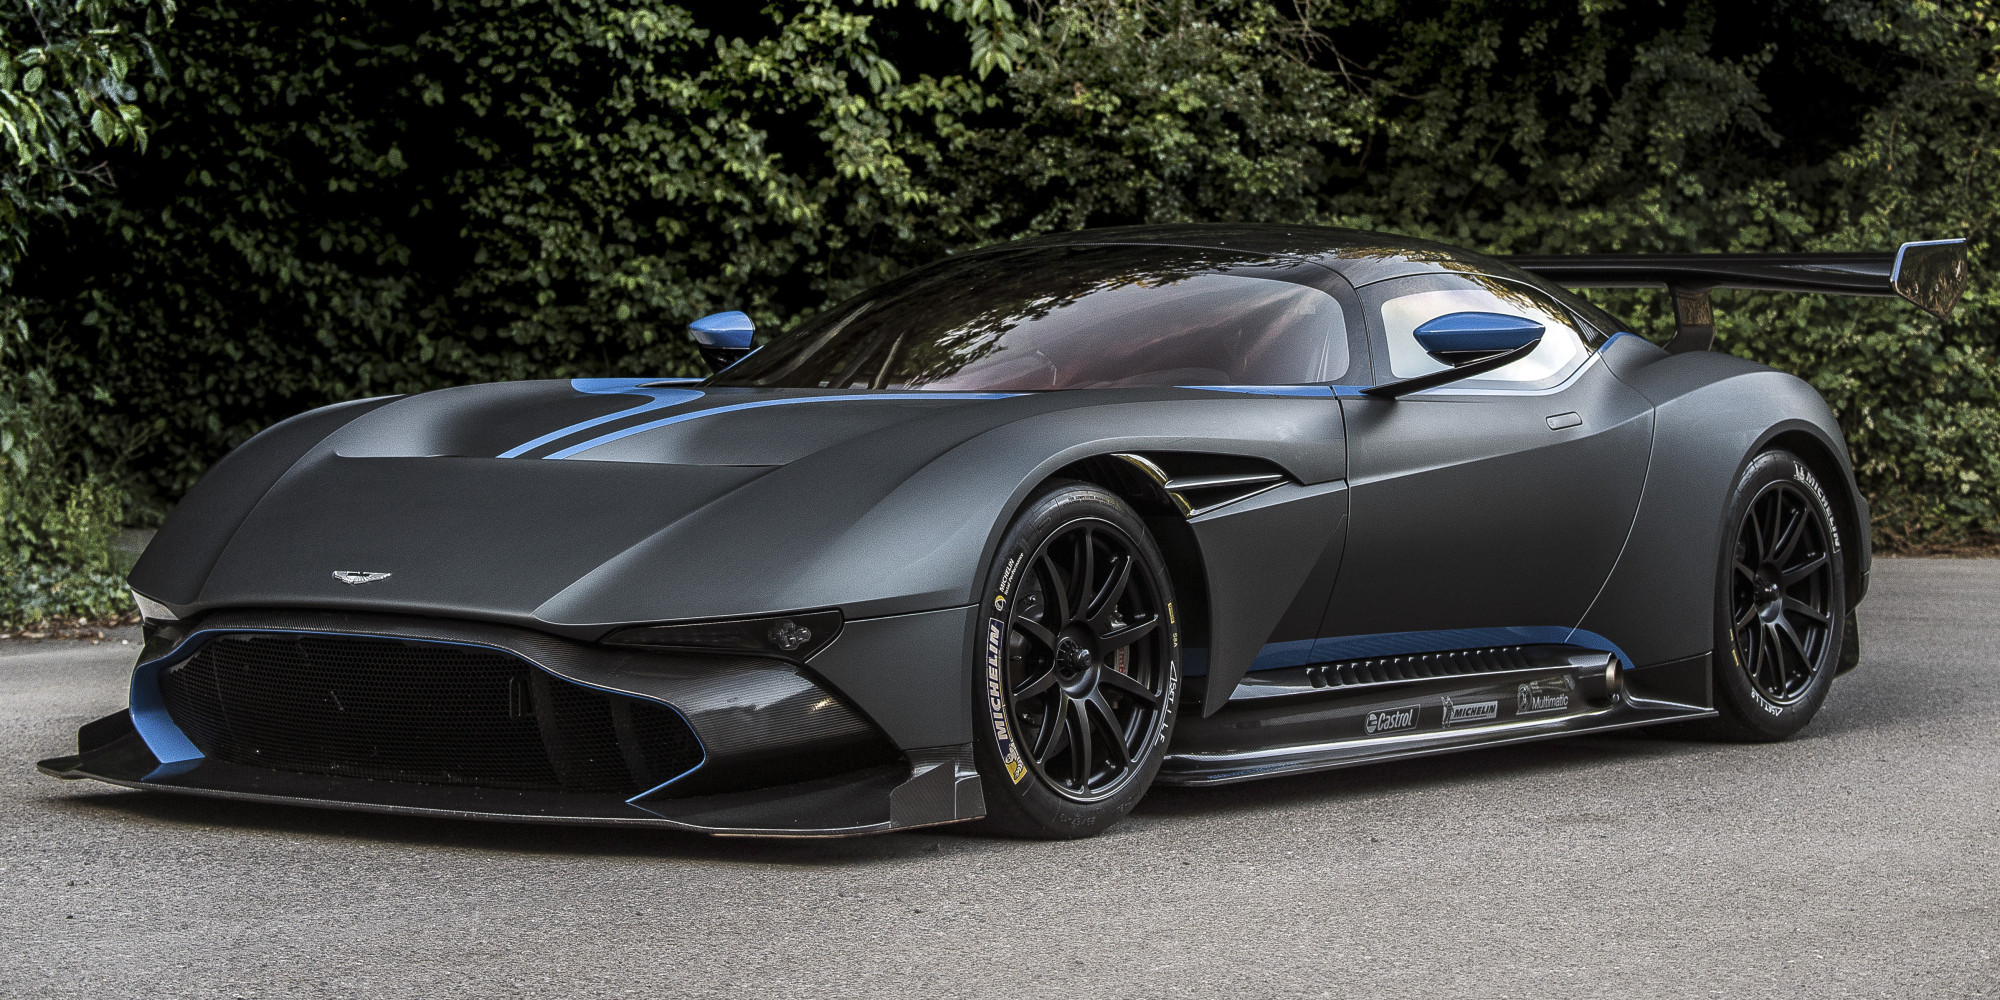 aston martin's $2.3 million vulcan supercar is a carbon fiber